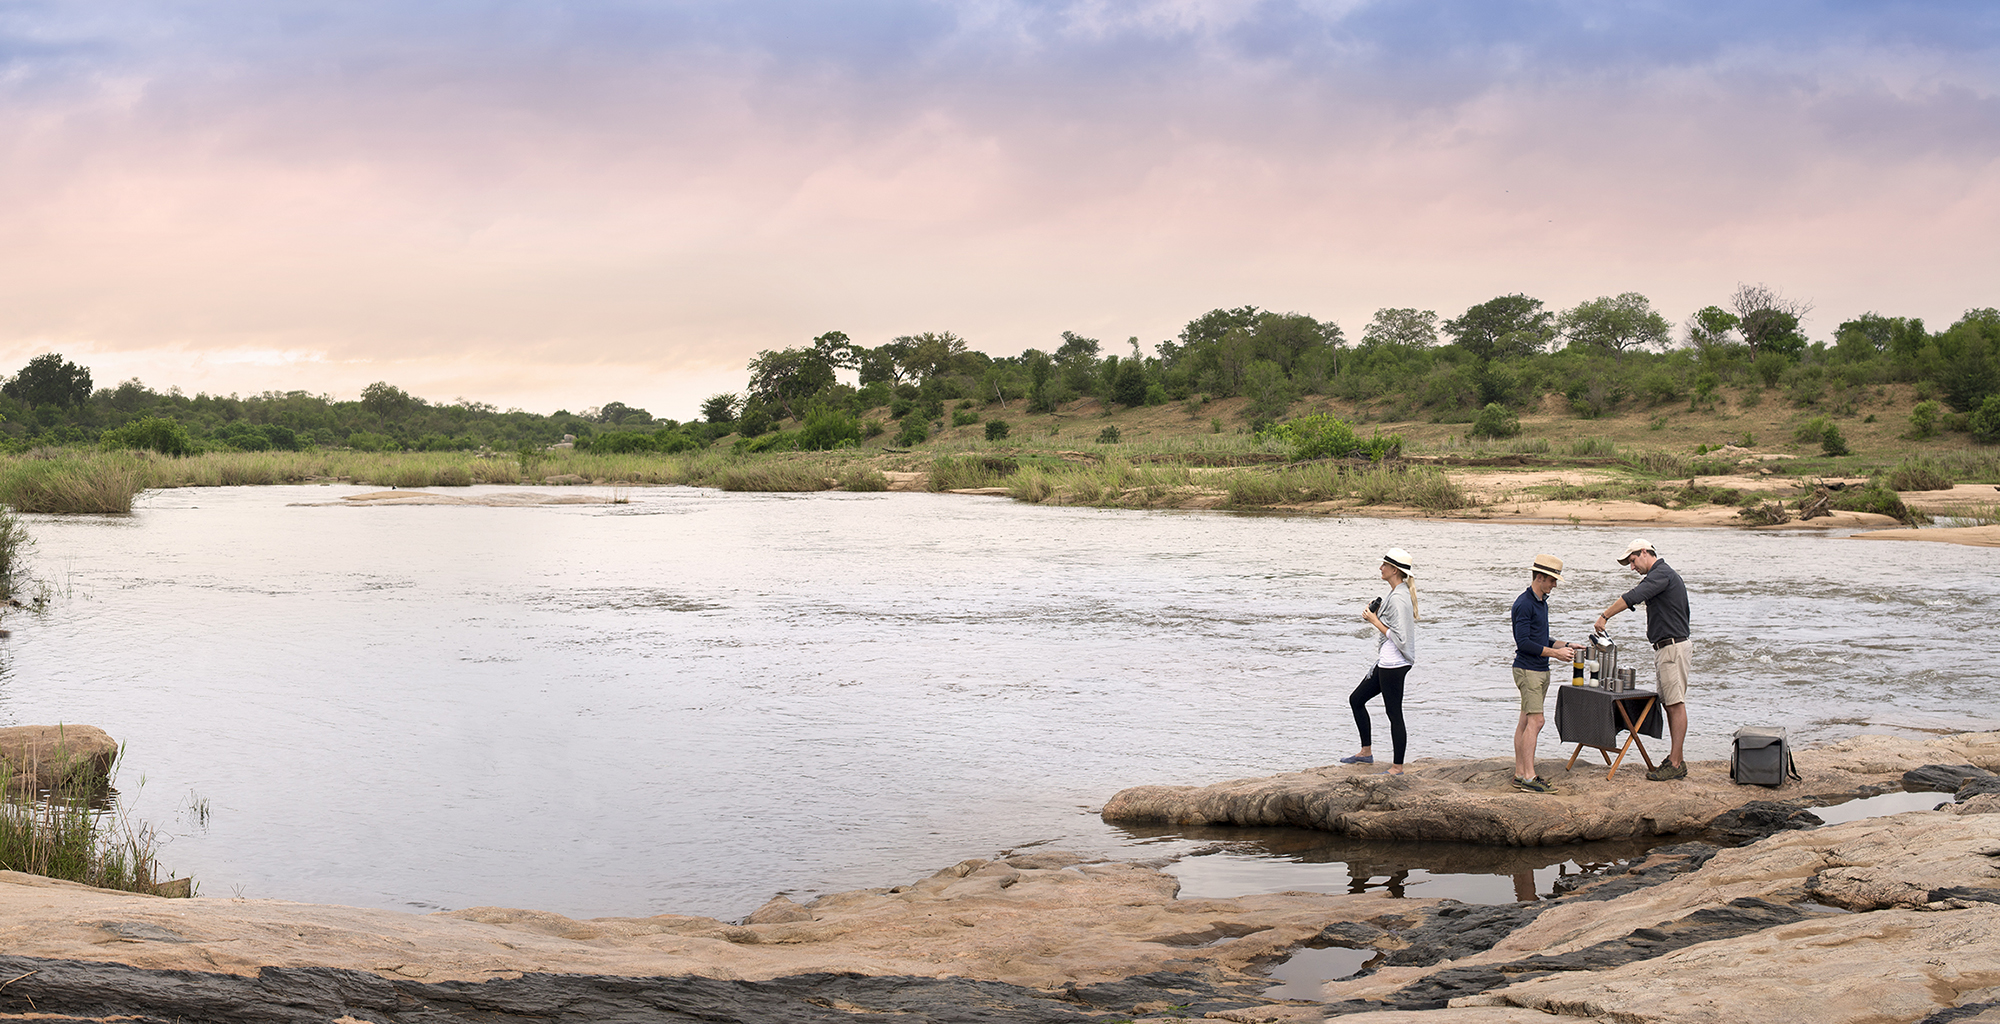 South-Africa-Kruger-National-Park-Riverside-Sundowner